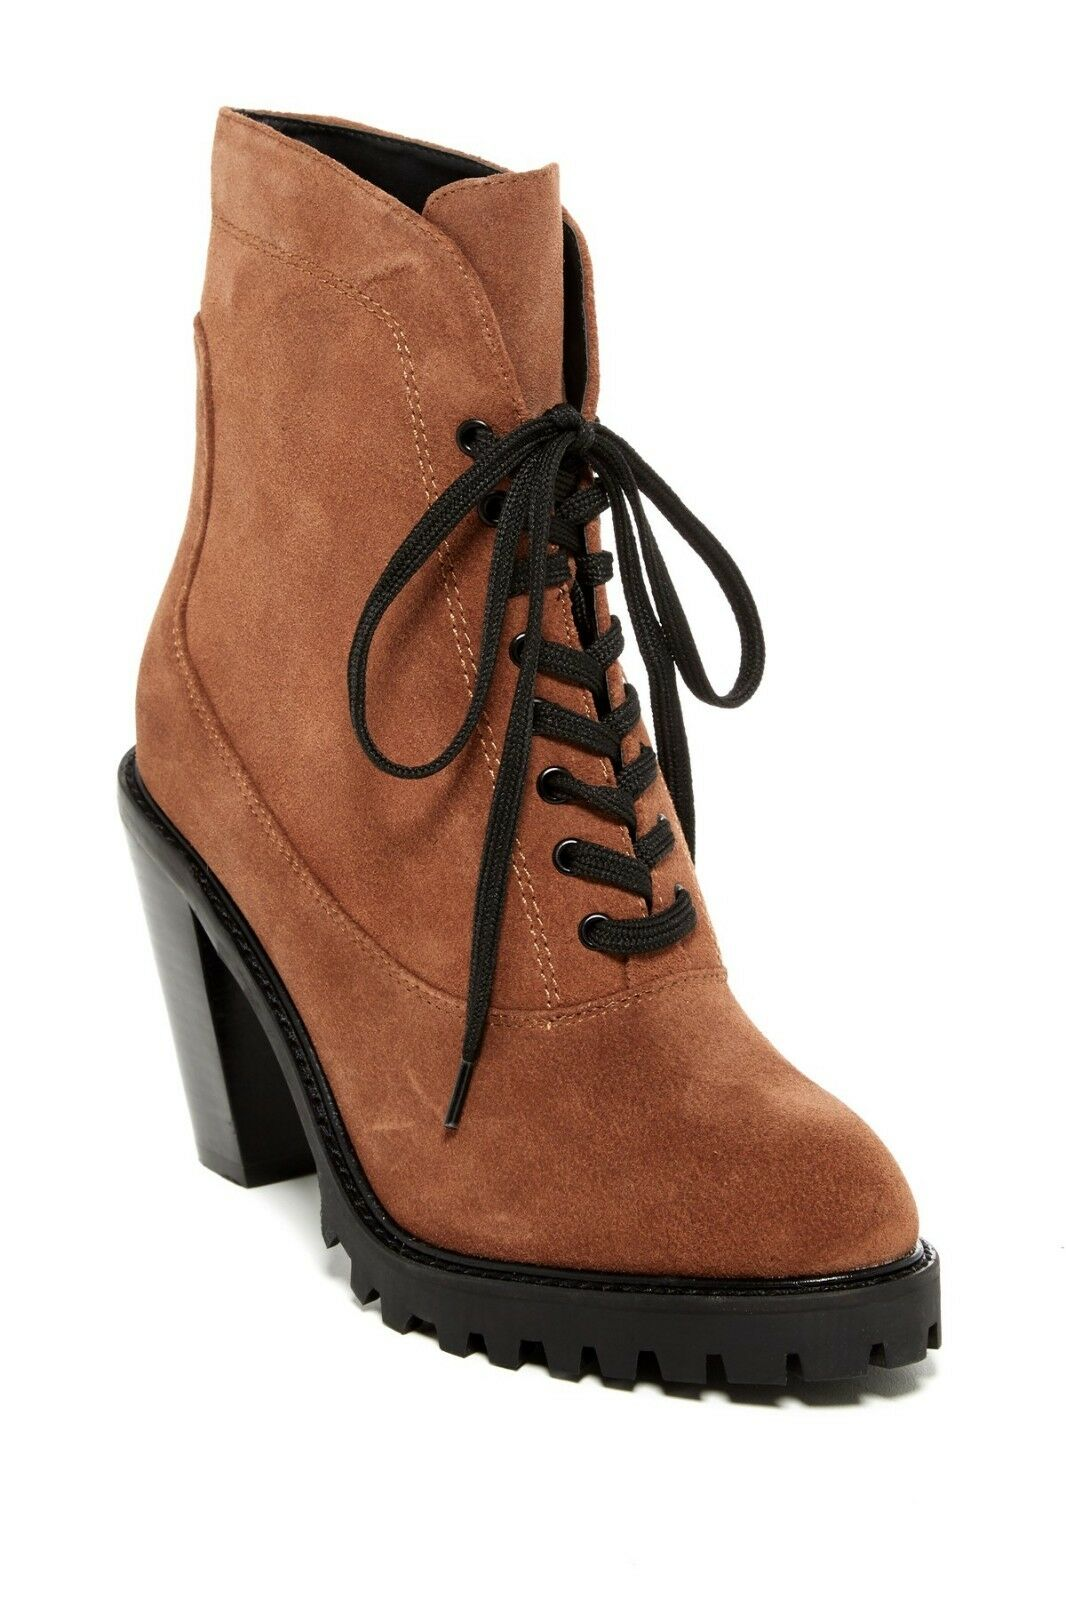 New  Kelsi Dagger Brooklyn Berlin Lace-Up démarrageie femmes bottes